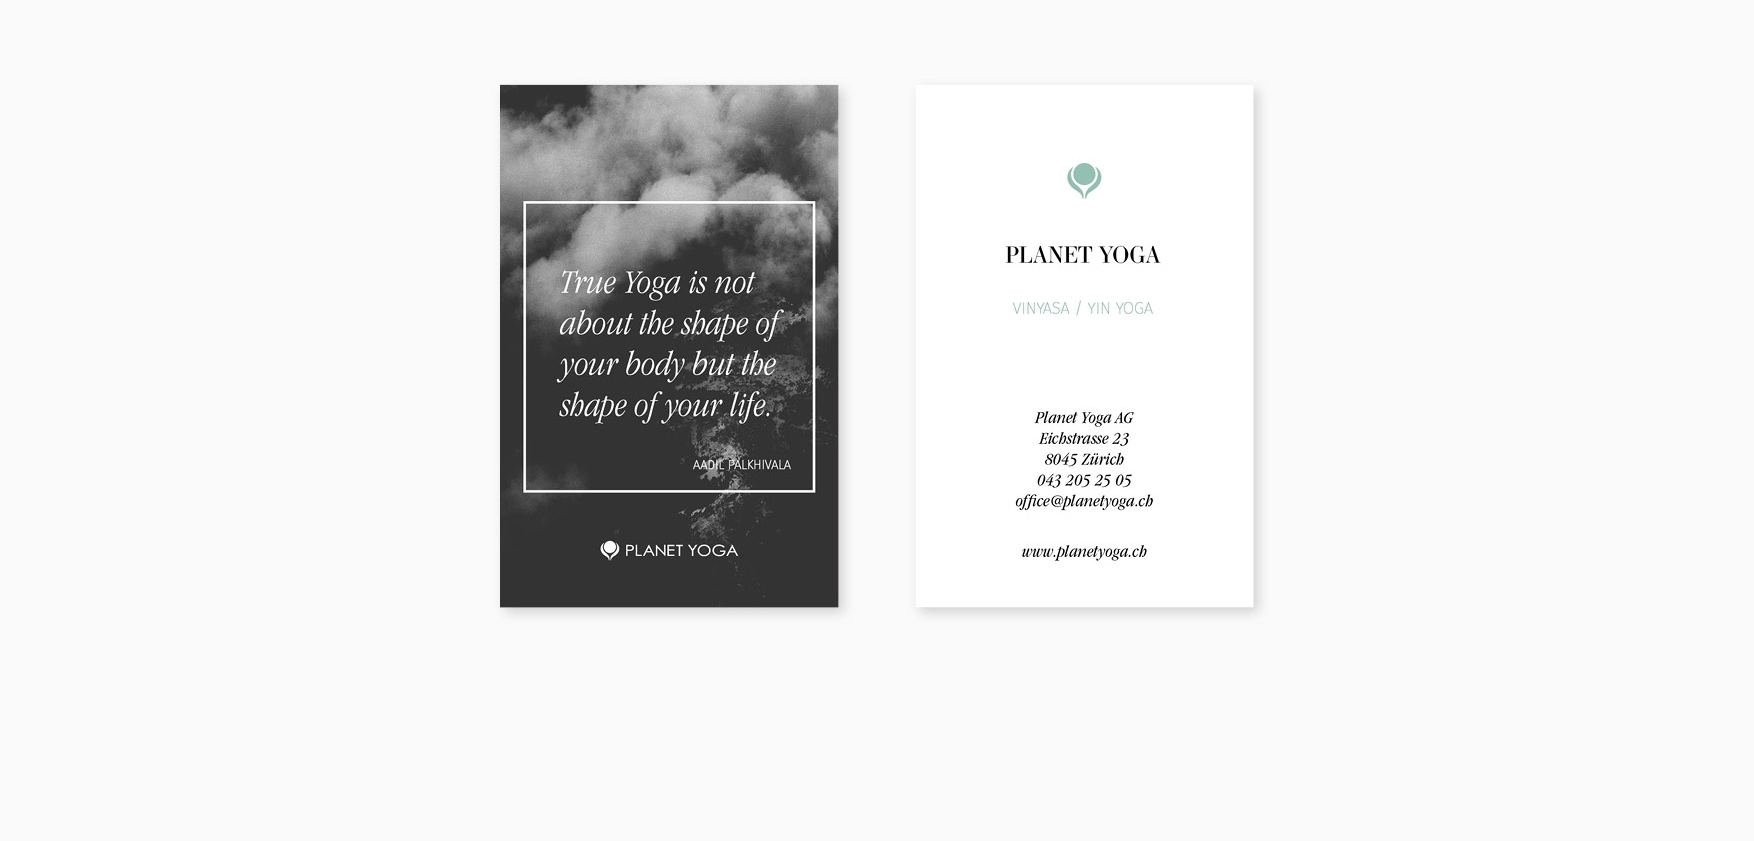 Planet Yoga Business cards — Anja heimer